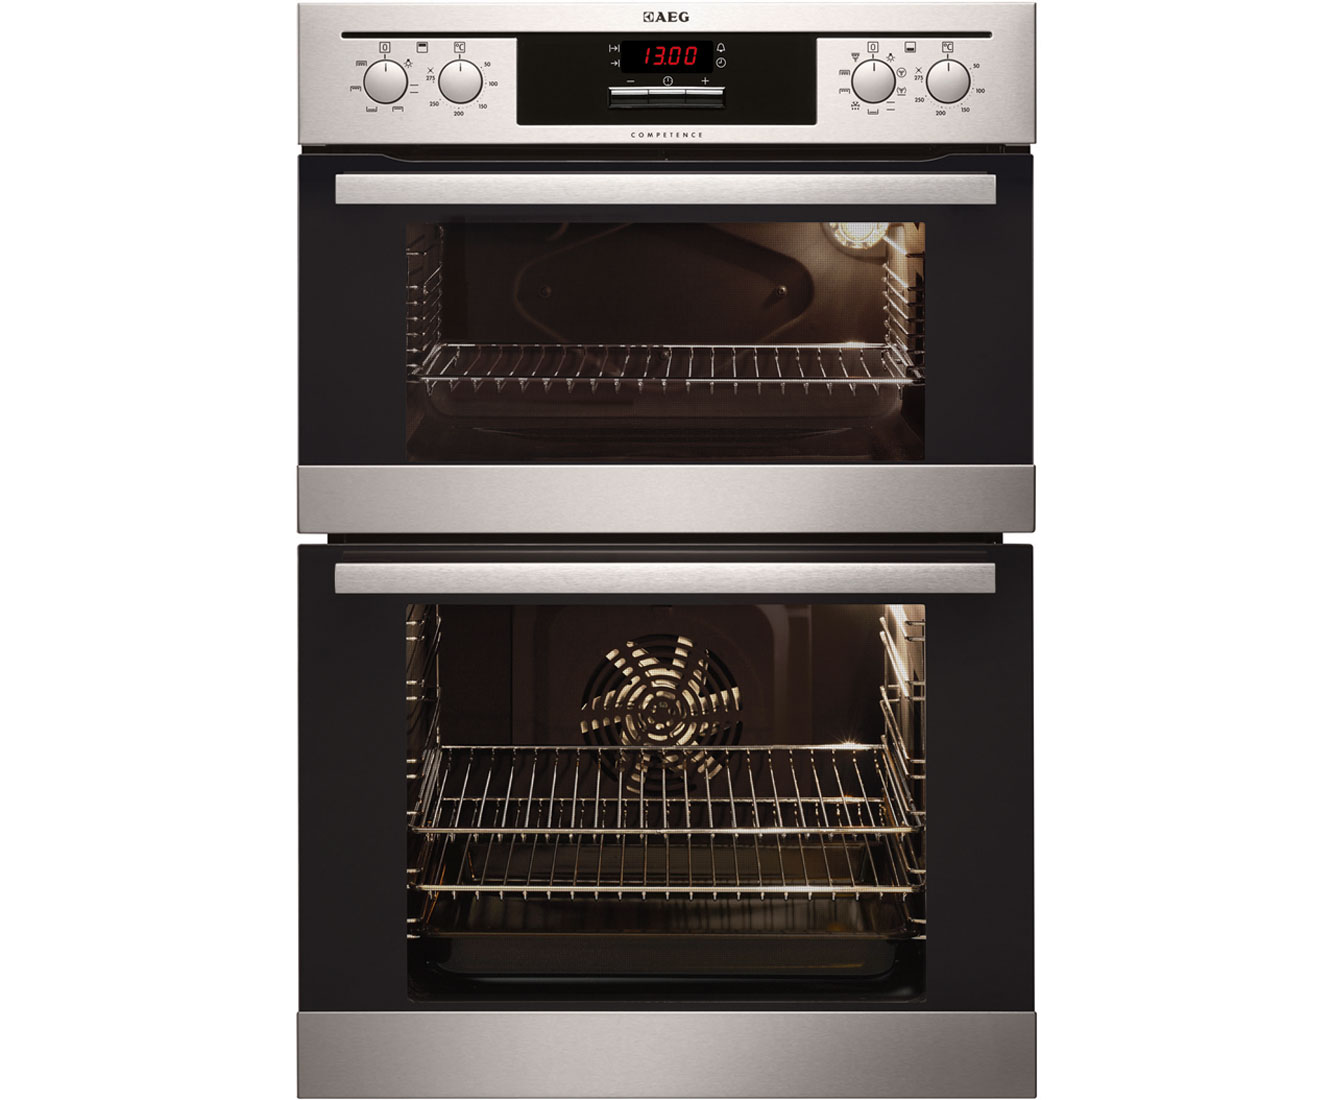 AEG Competence DC4013021M Integrated Double Oven in Stainless Steel